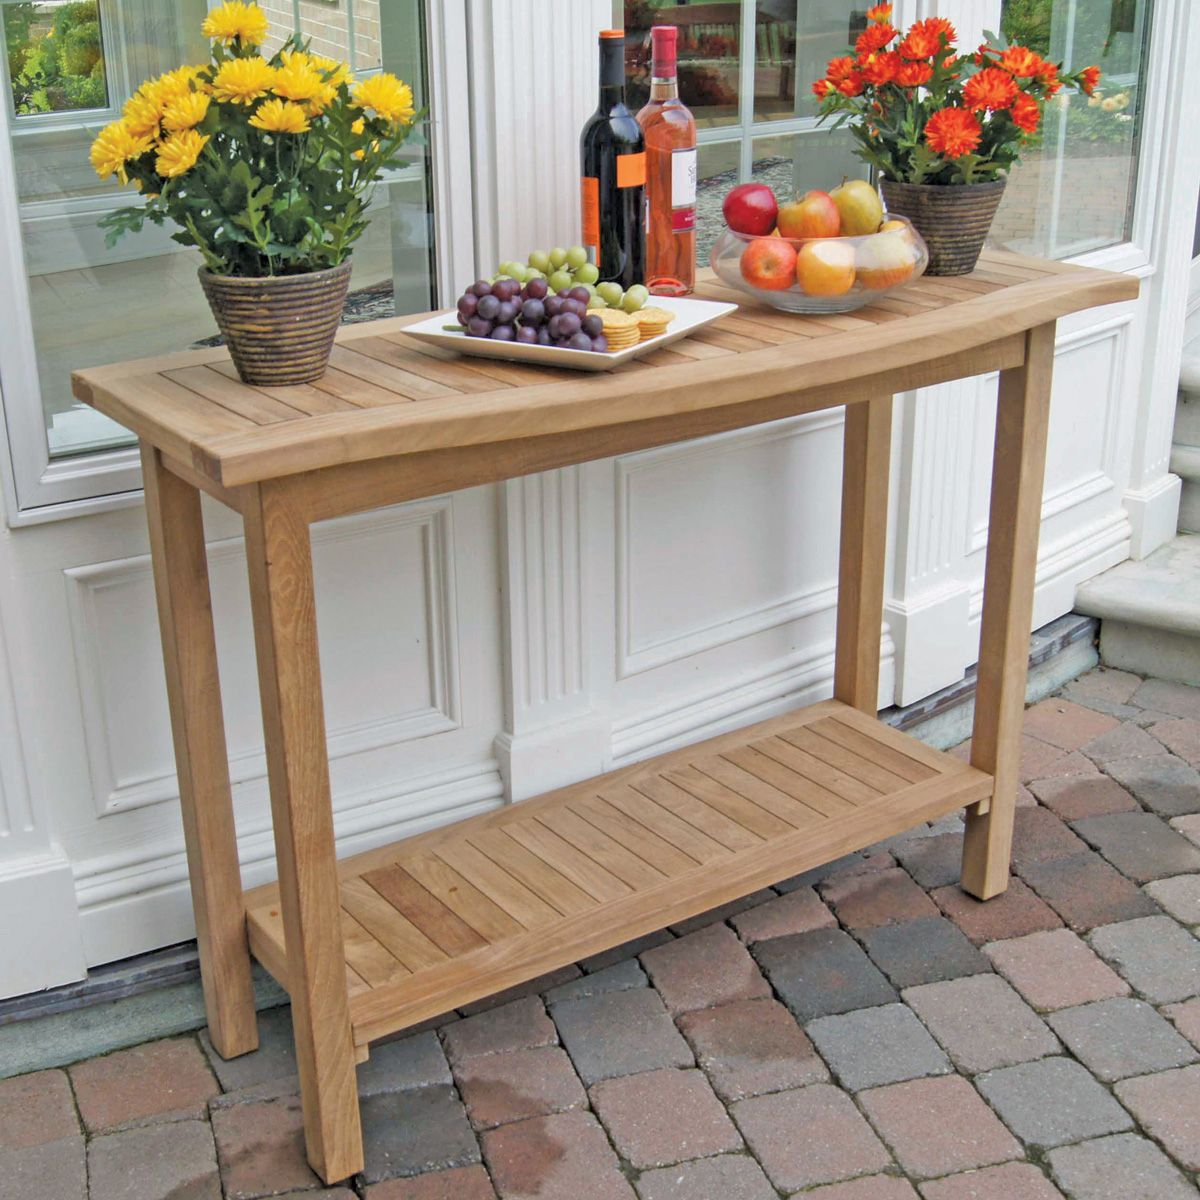 Teak Buffet Table Made From Premium Plantation Teak | Thos. Baker